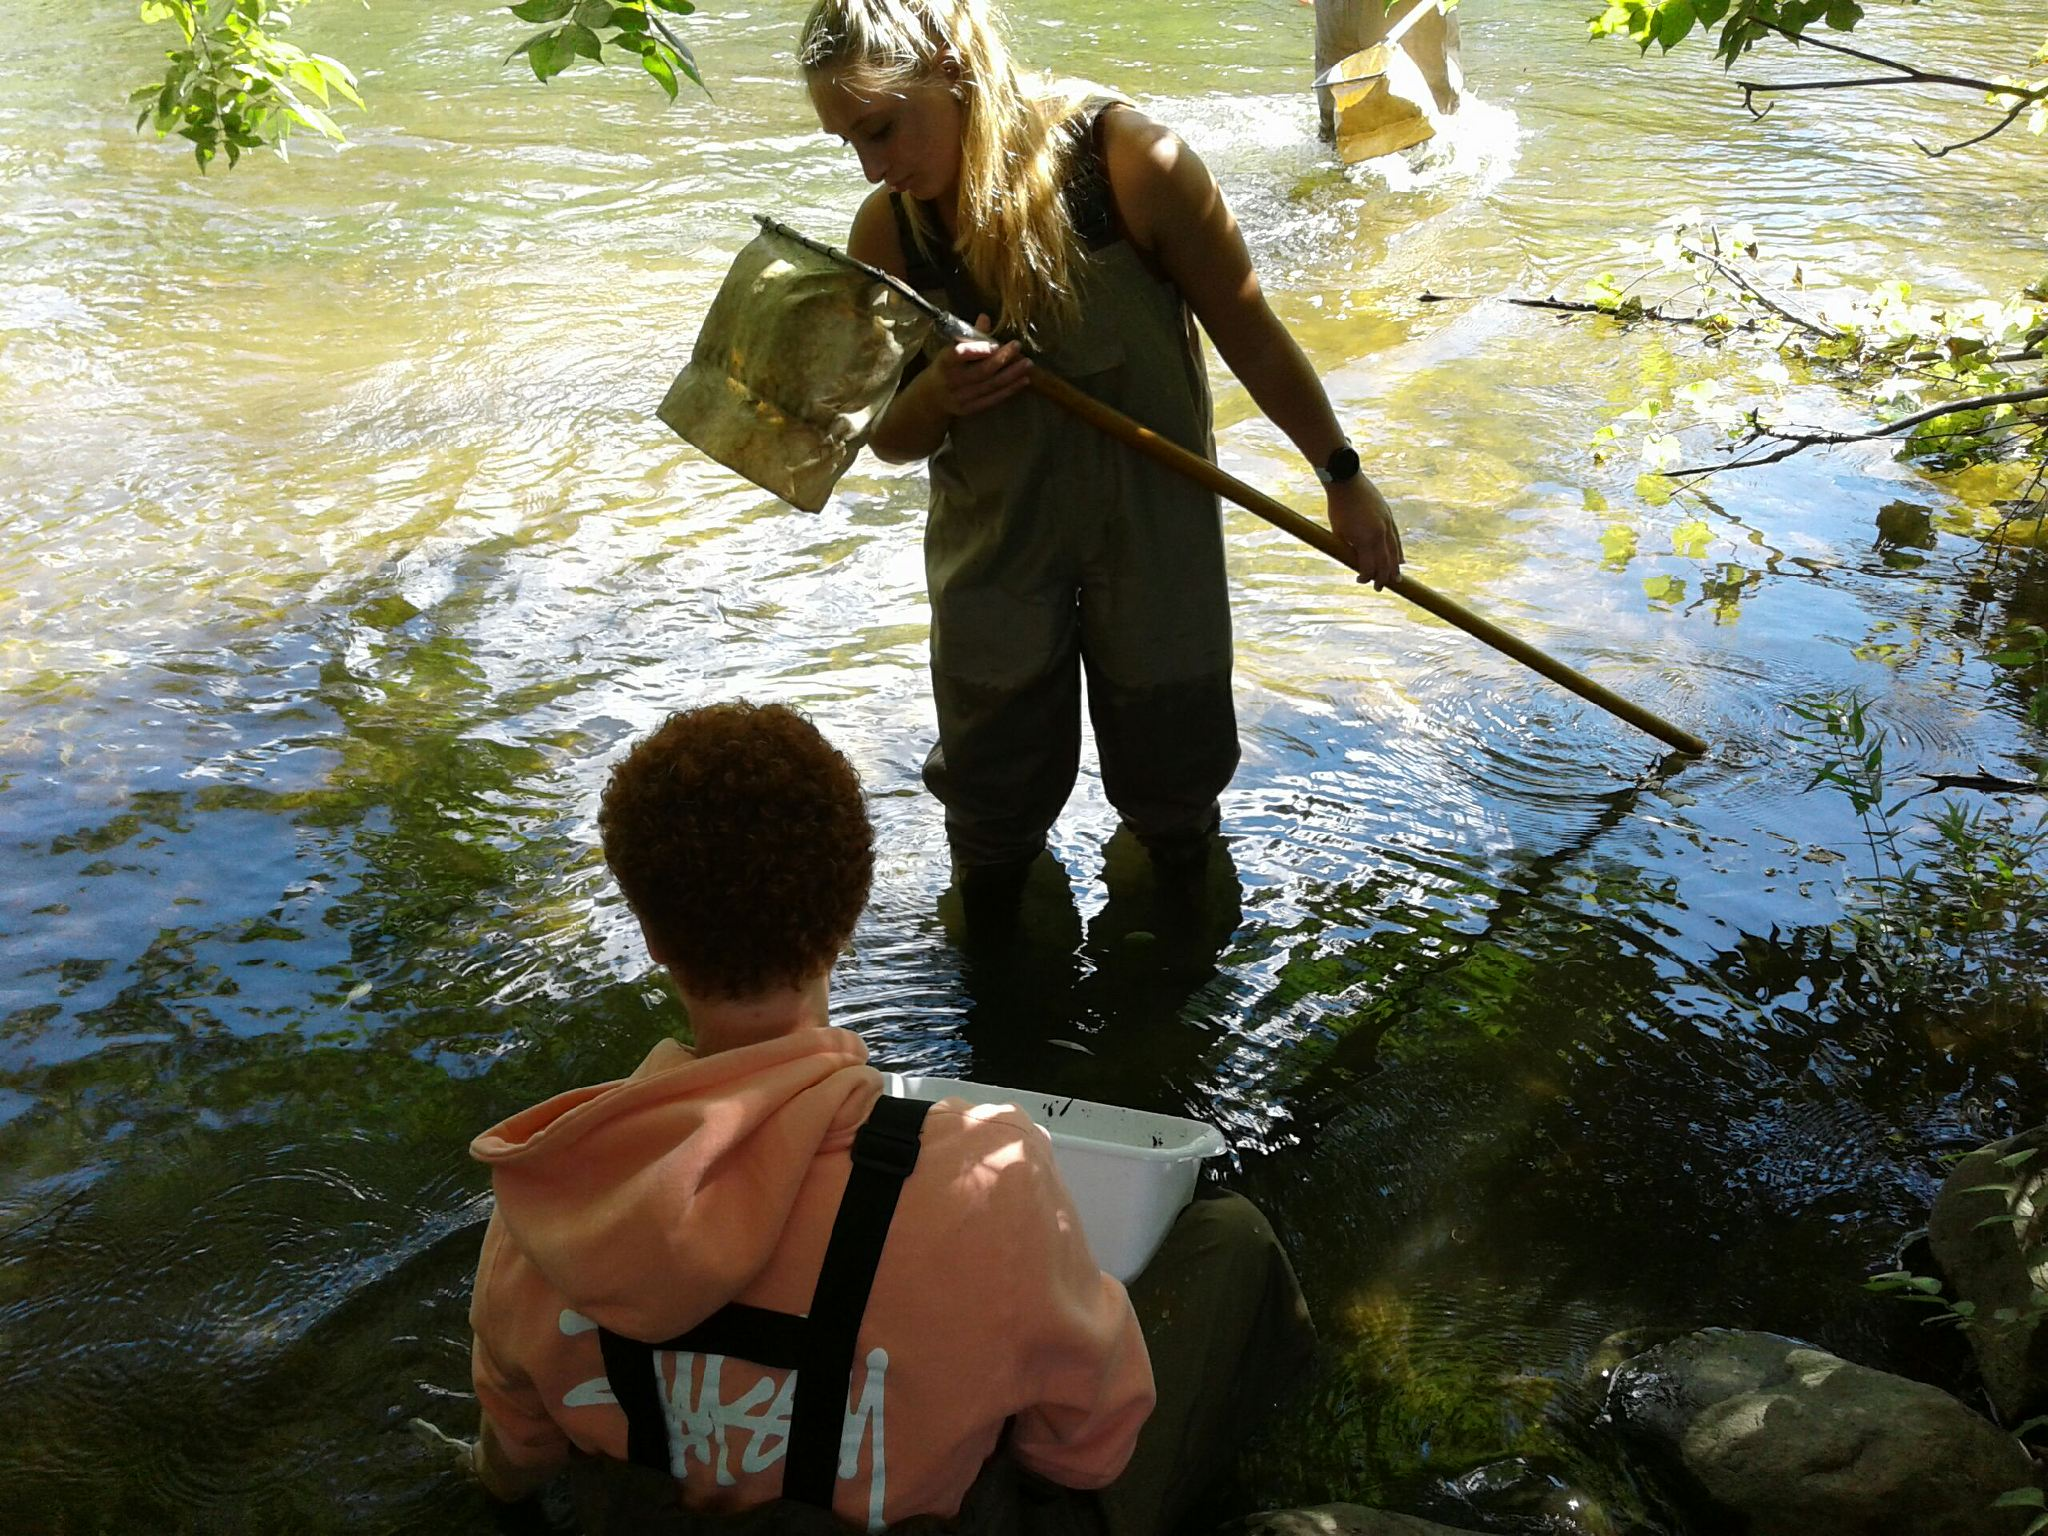 Girl and boy in river with net